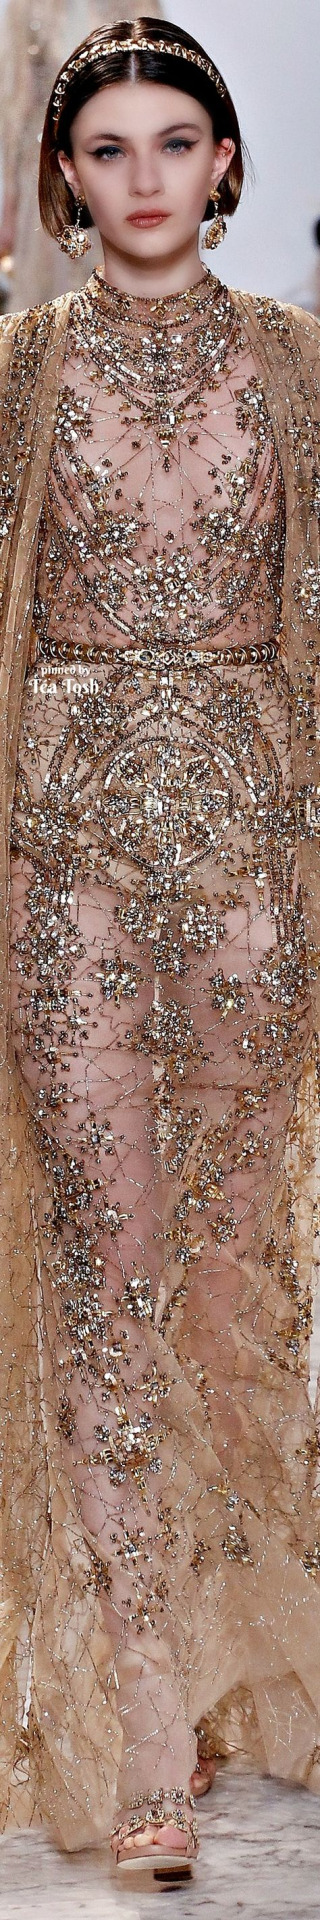 ❇Téa Tosh❇ Elie Saab, Spring 2017, Couture